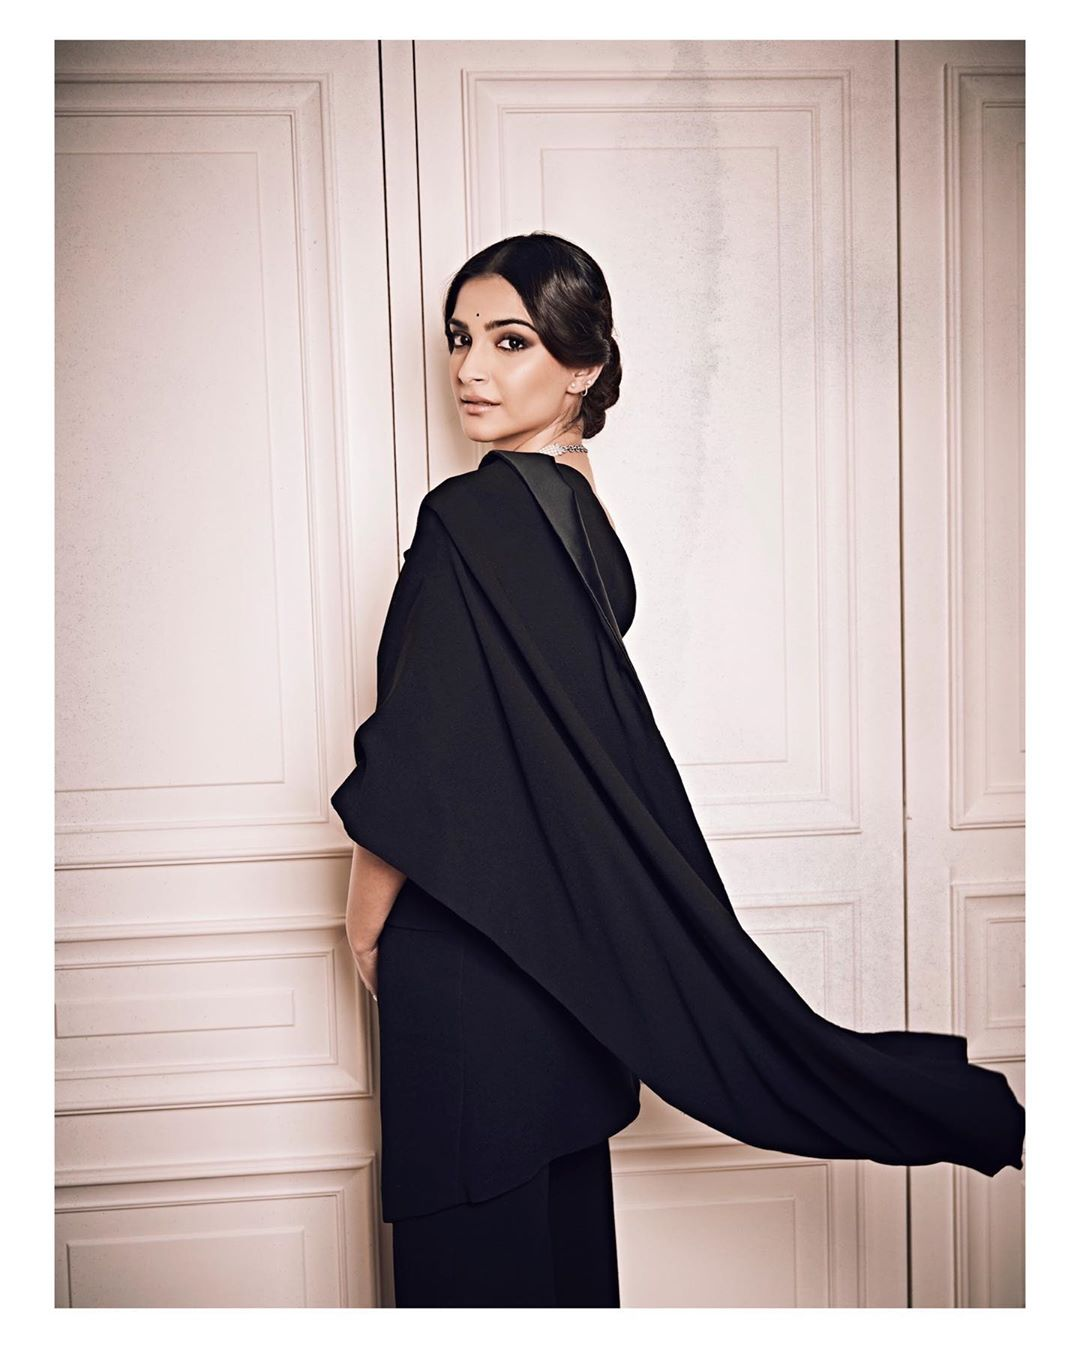 Sonam Kapoor wearing a Jean Paul Gaultier's Sari Tuxedo in Paris